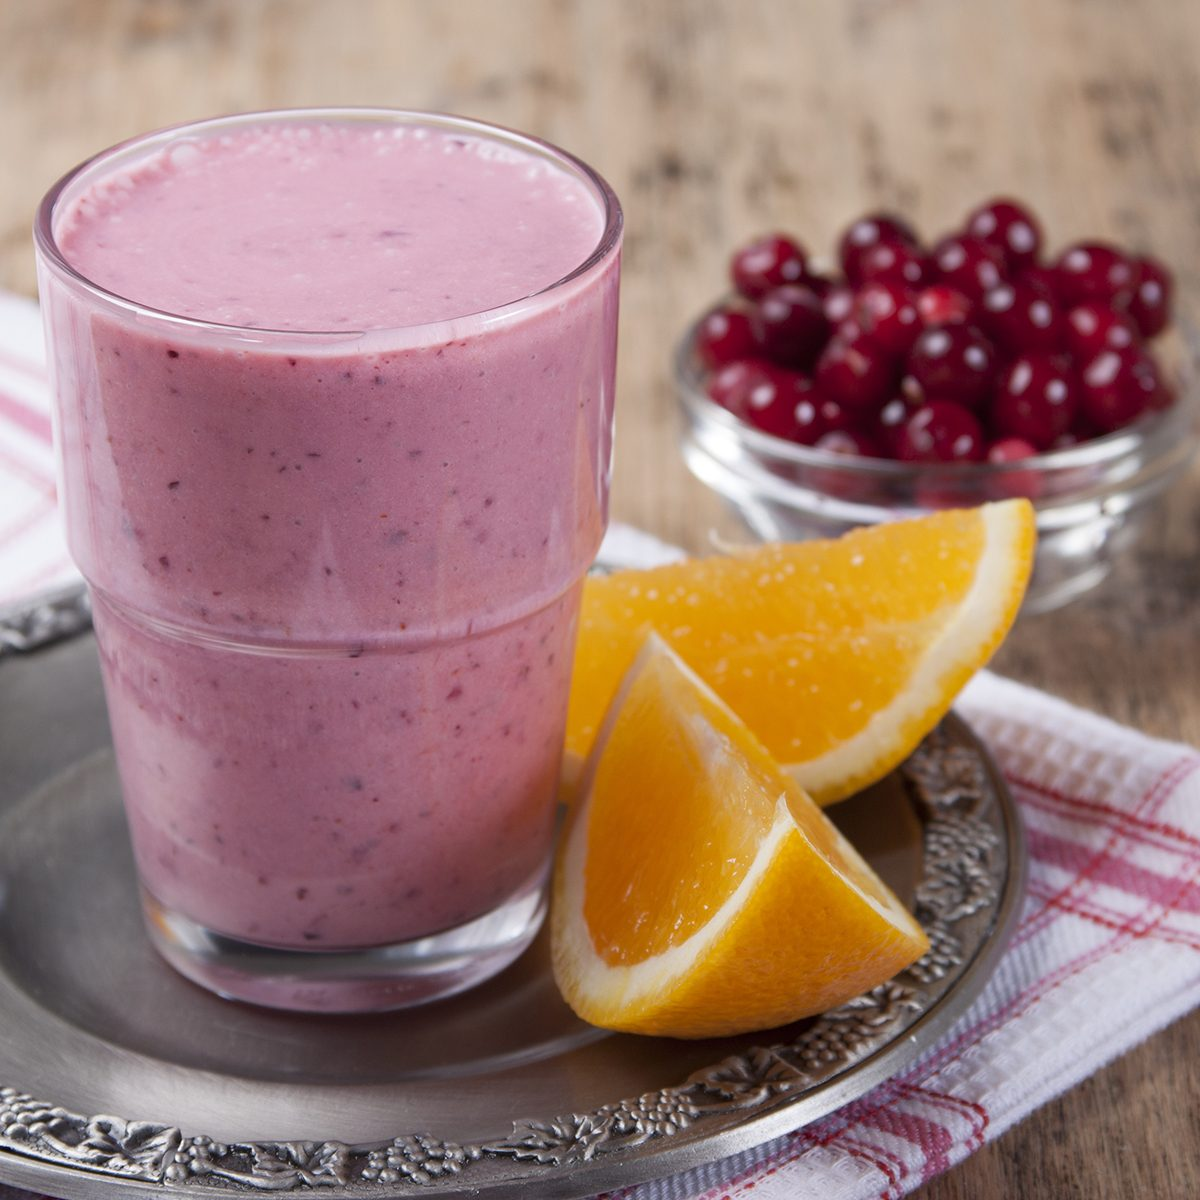 Smoothies and orange and cranberries in a glass on a wooden table.